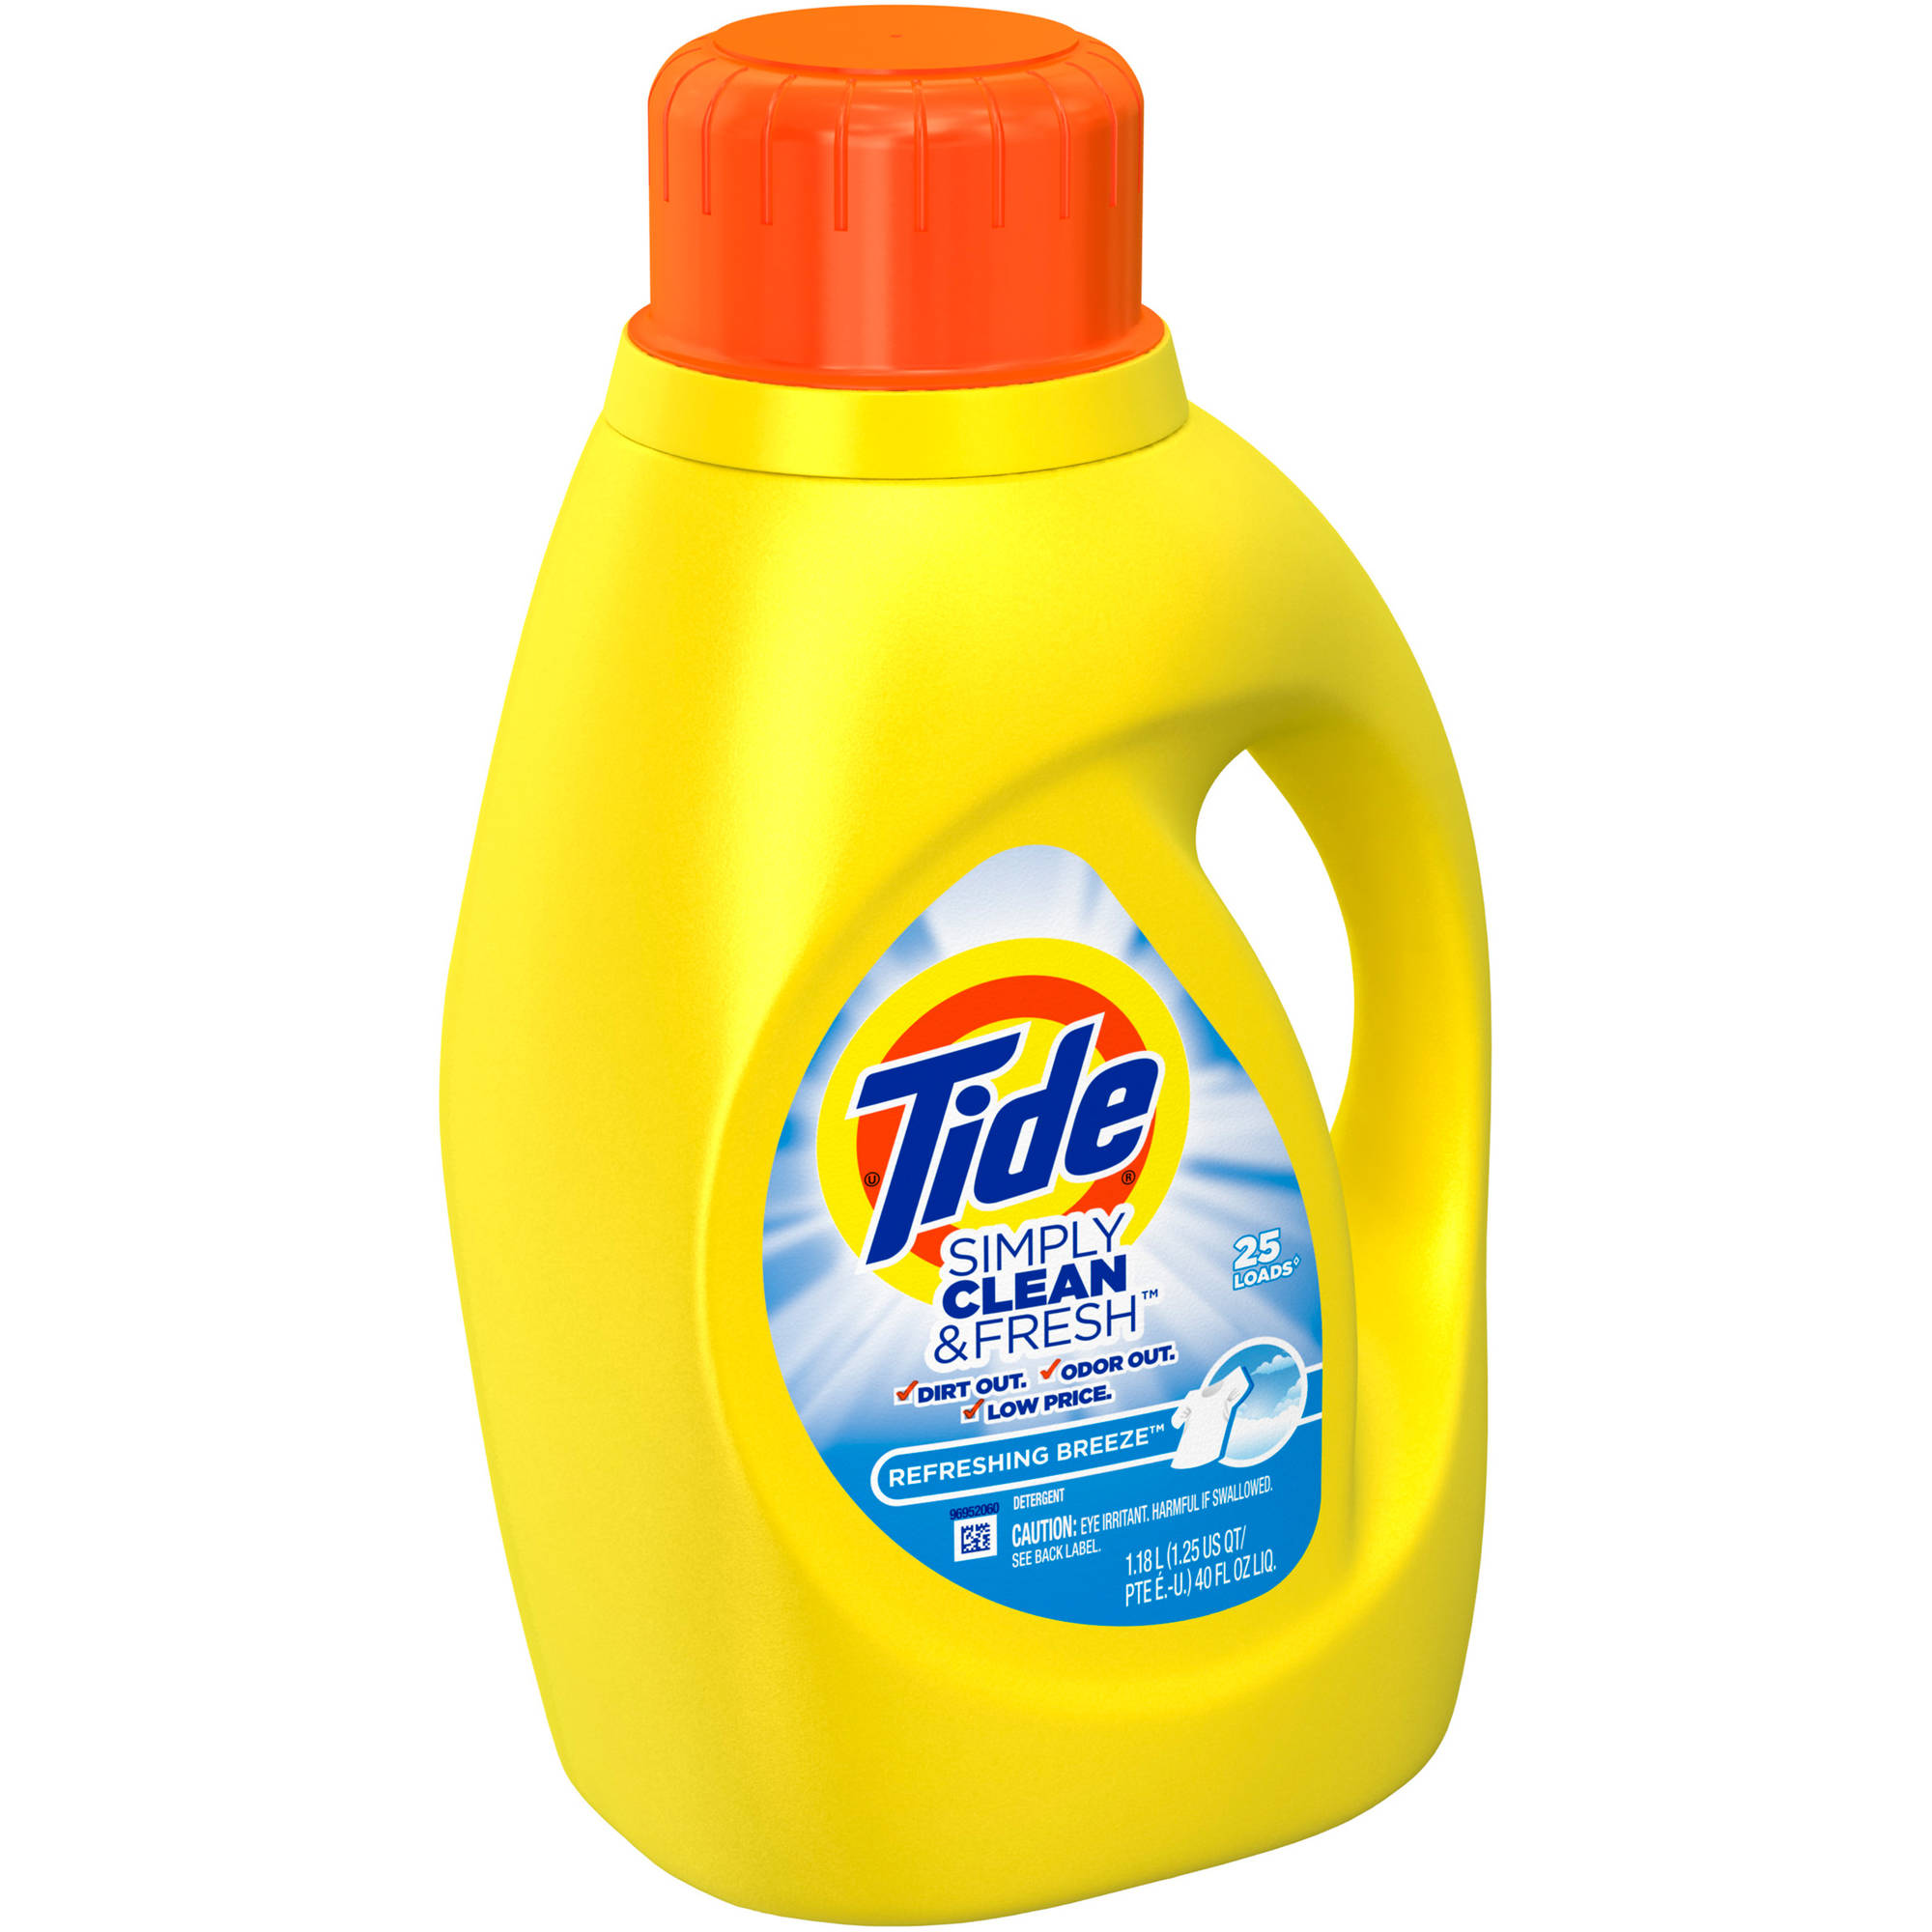 photo relating to Tide Simply Clean Printable Coupons referred to as Cost-free Tide Very easily Fresh new Fresh new Laundry Detergent As soon as Supreme